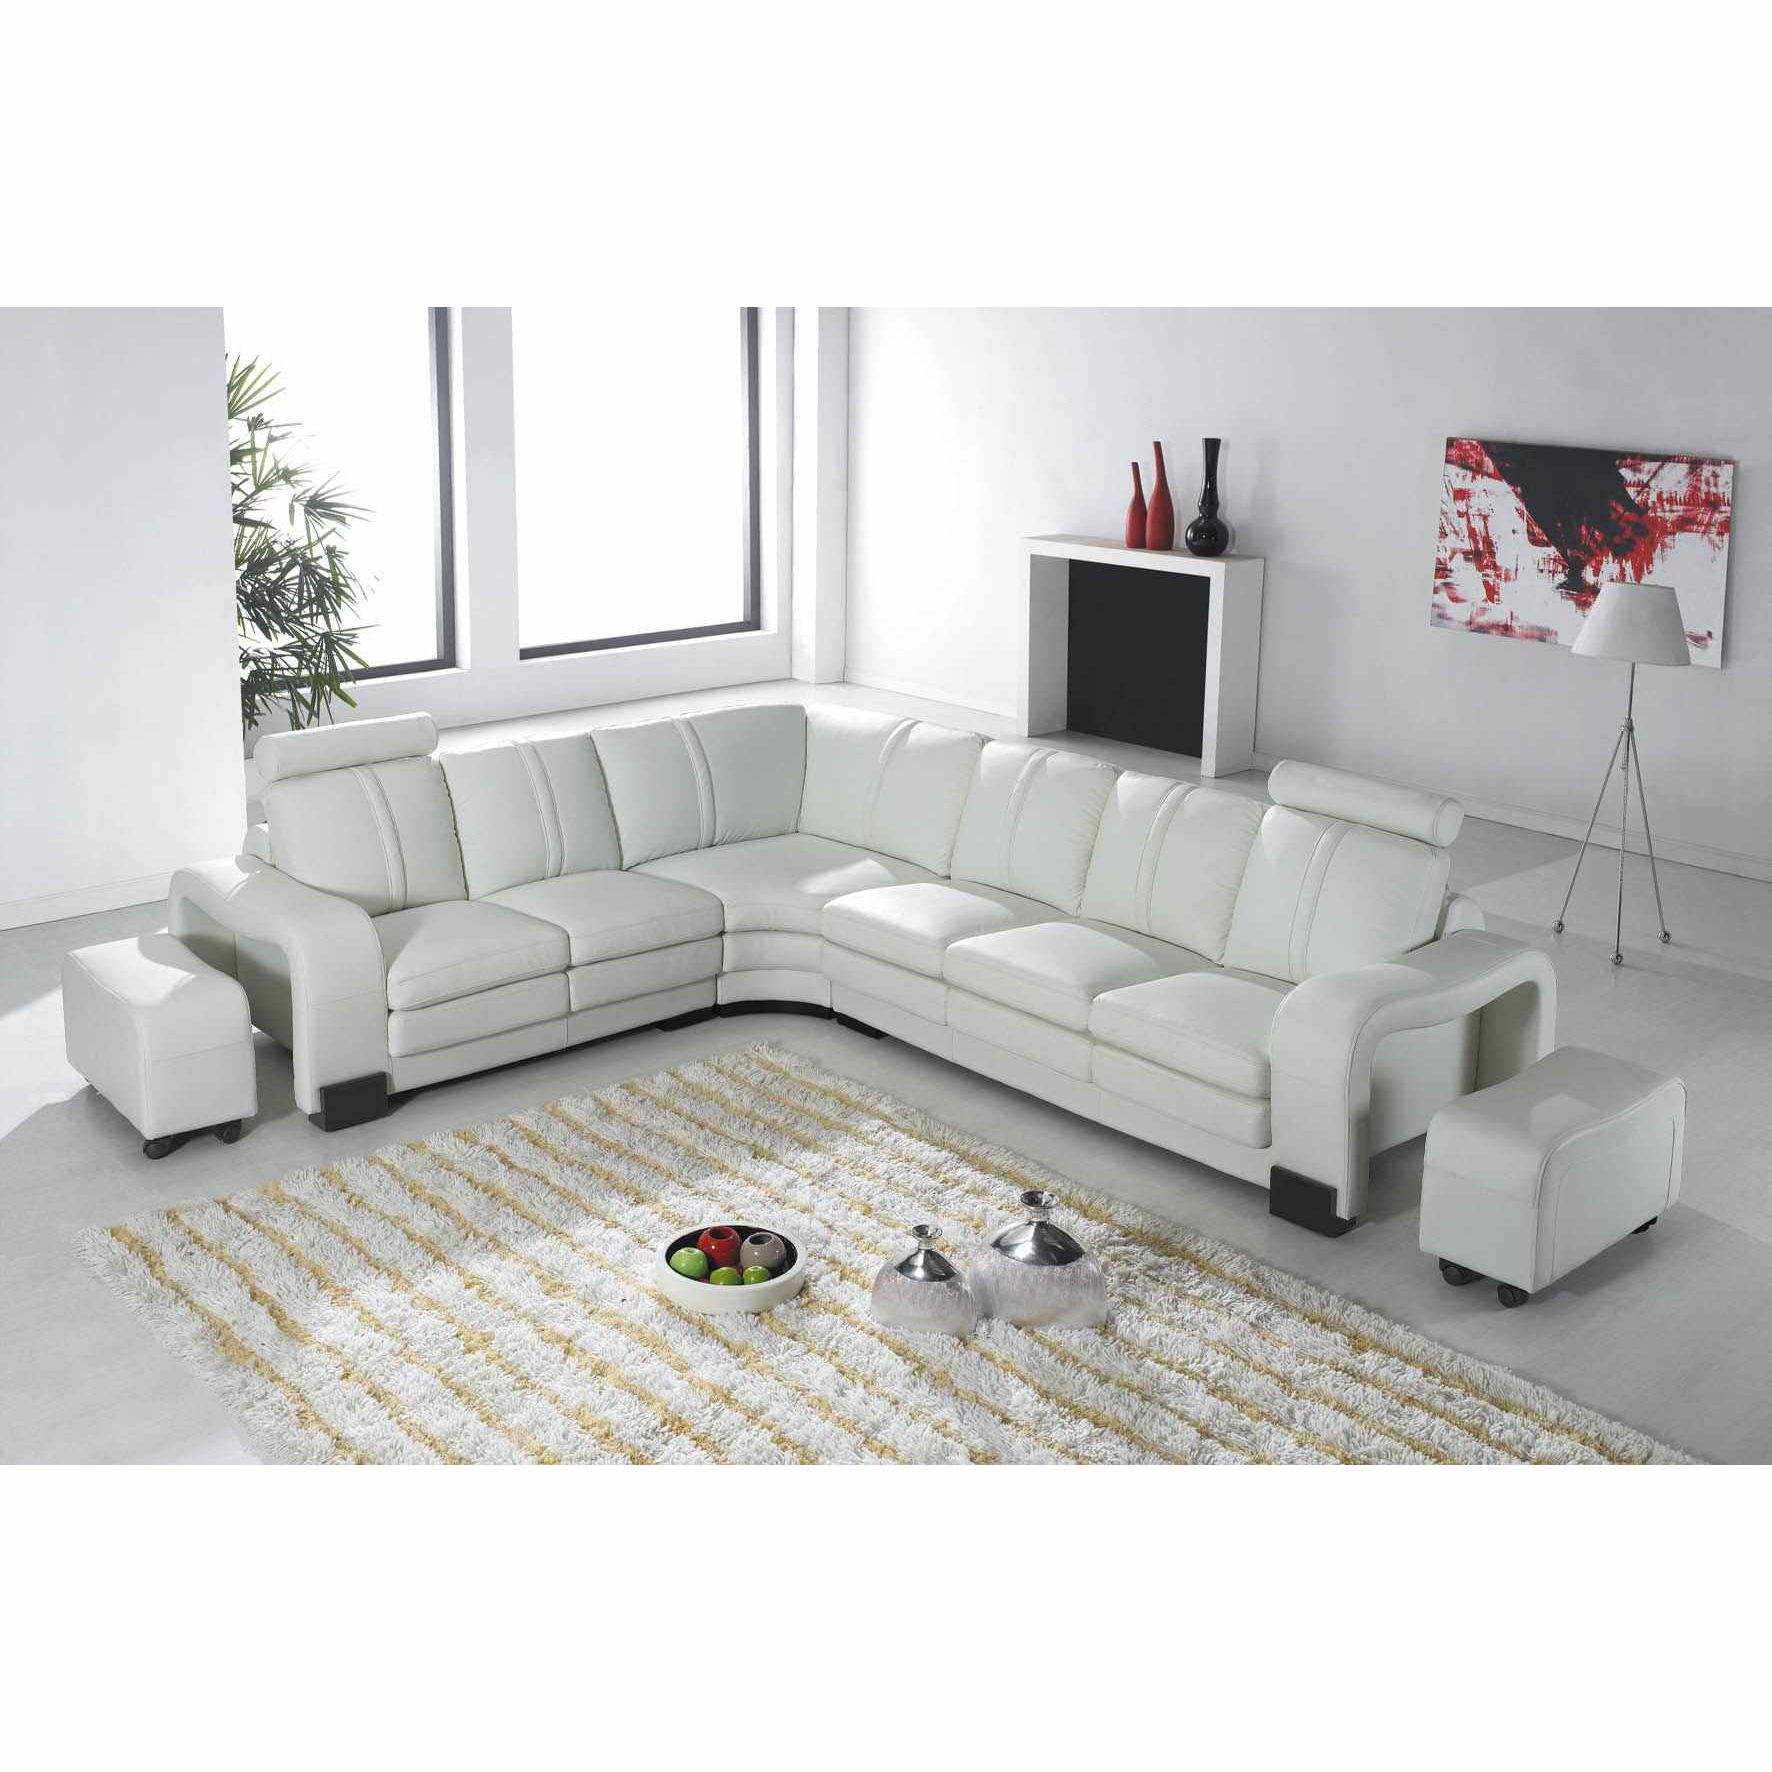 canap d angle convertible cuir blanc canape convertible. Black Bedroom Furniture Sets. Home Design Ideas